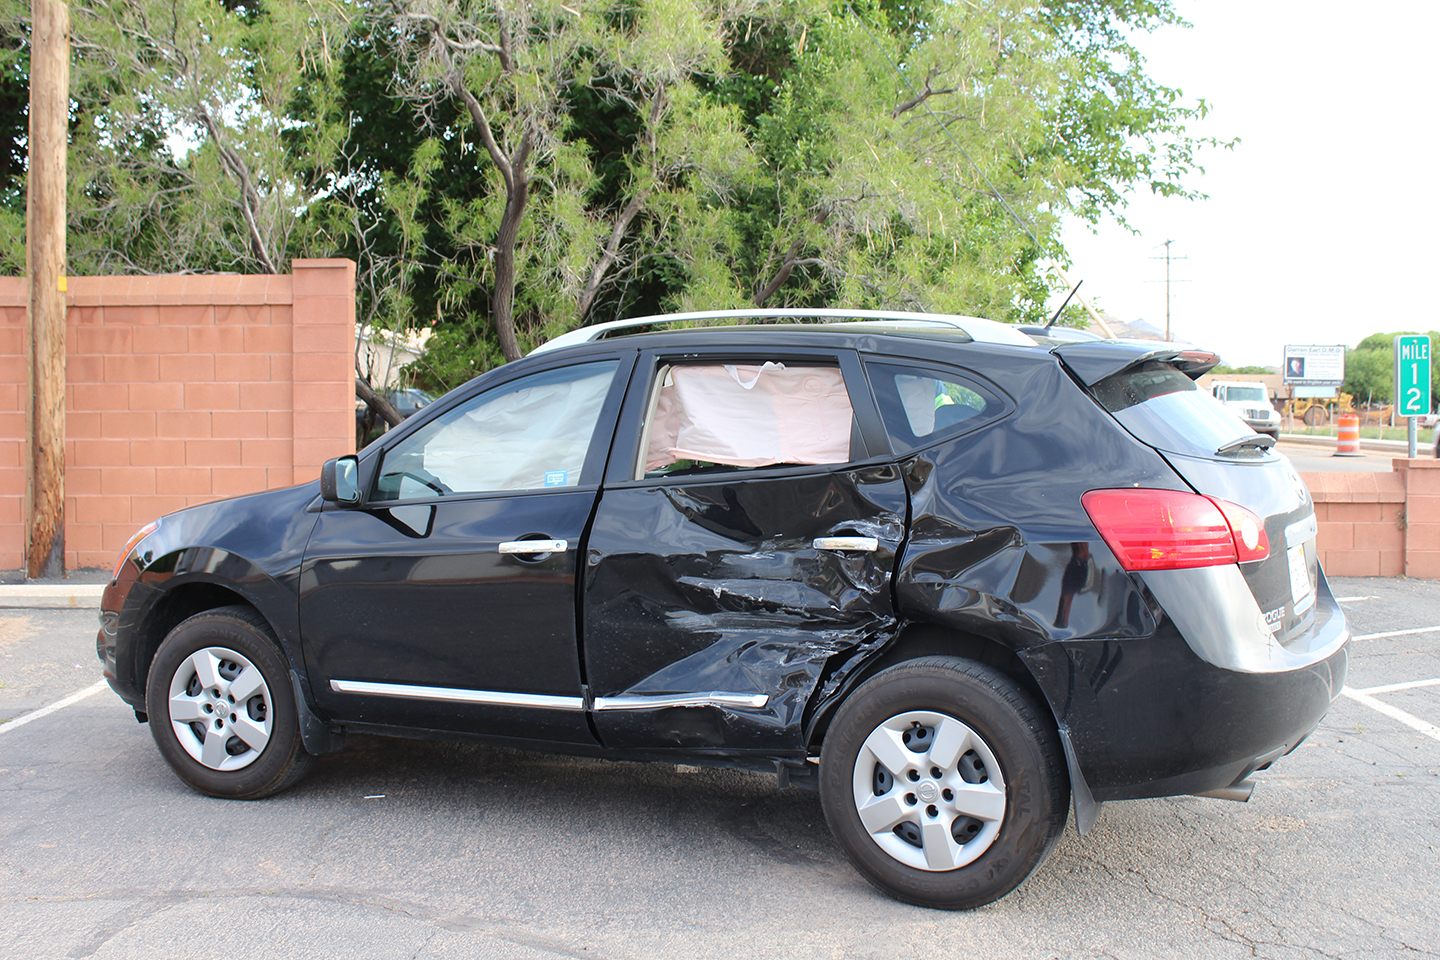 Damage to a vehicle involved in a three-vehicle collision on State Street, Laverkin, Utah, May 11, 2015 | Photo by Nataly Burdick, St. George News